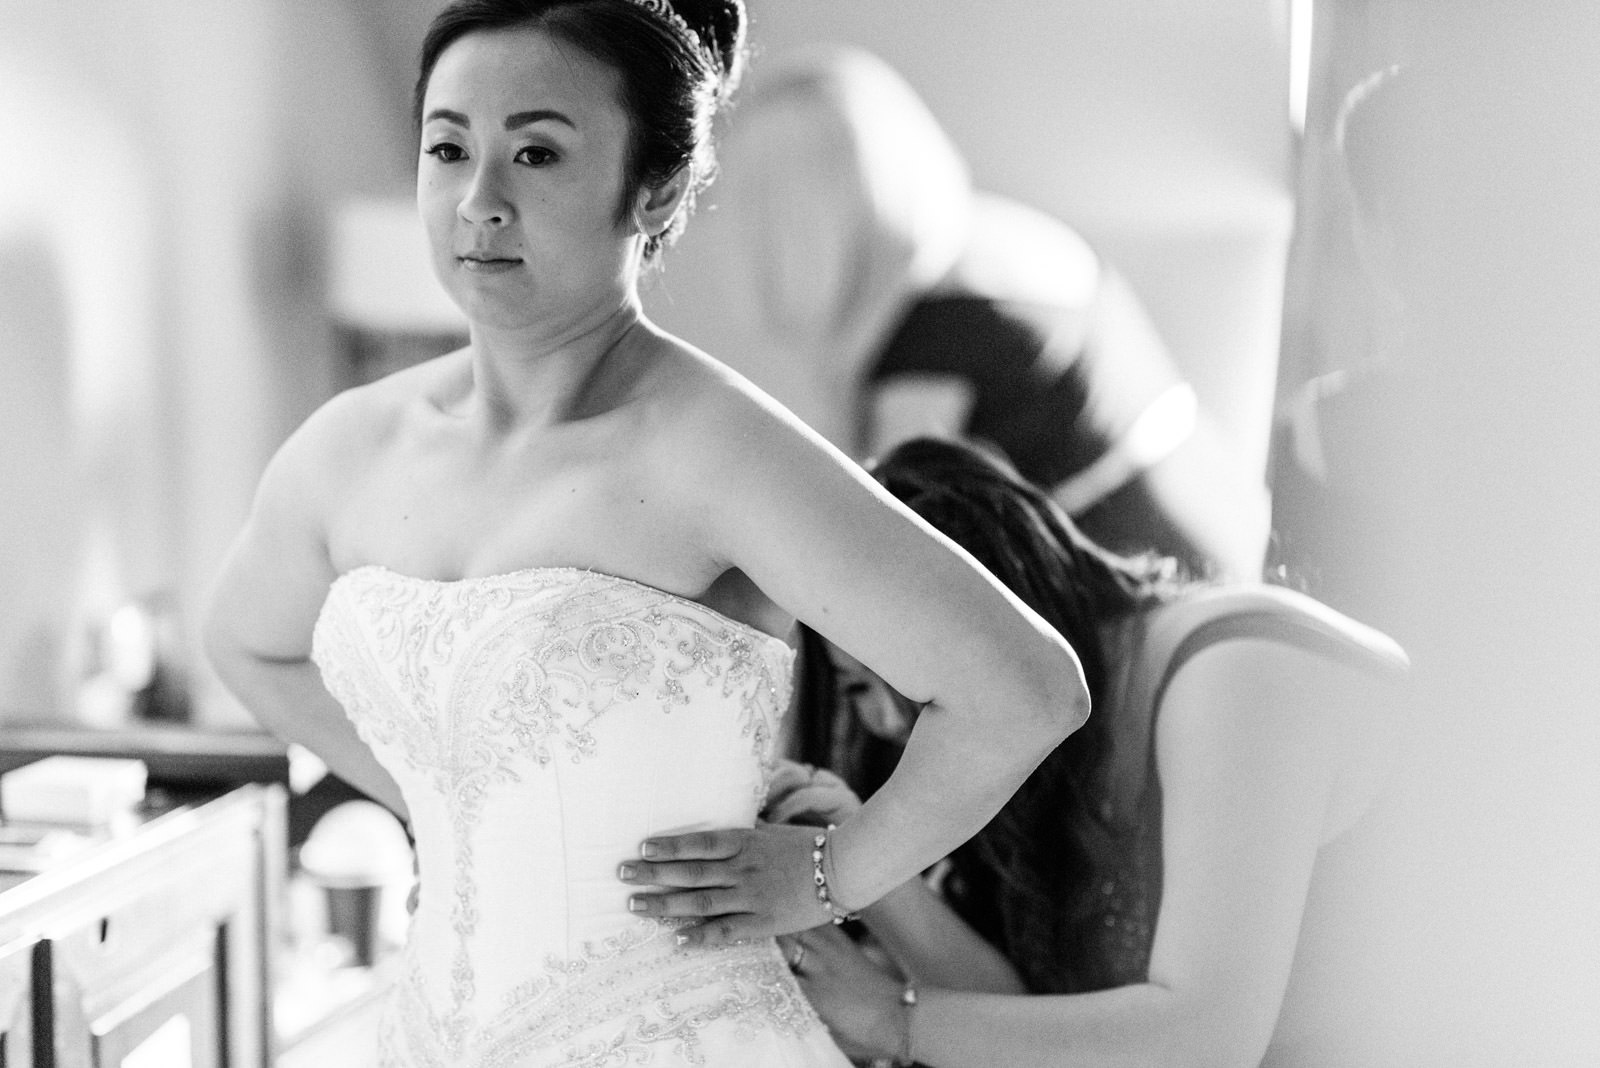 black and white photo of bride getting wedding dress fitted